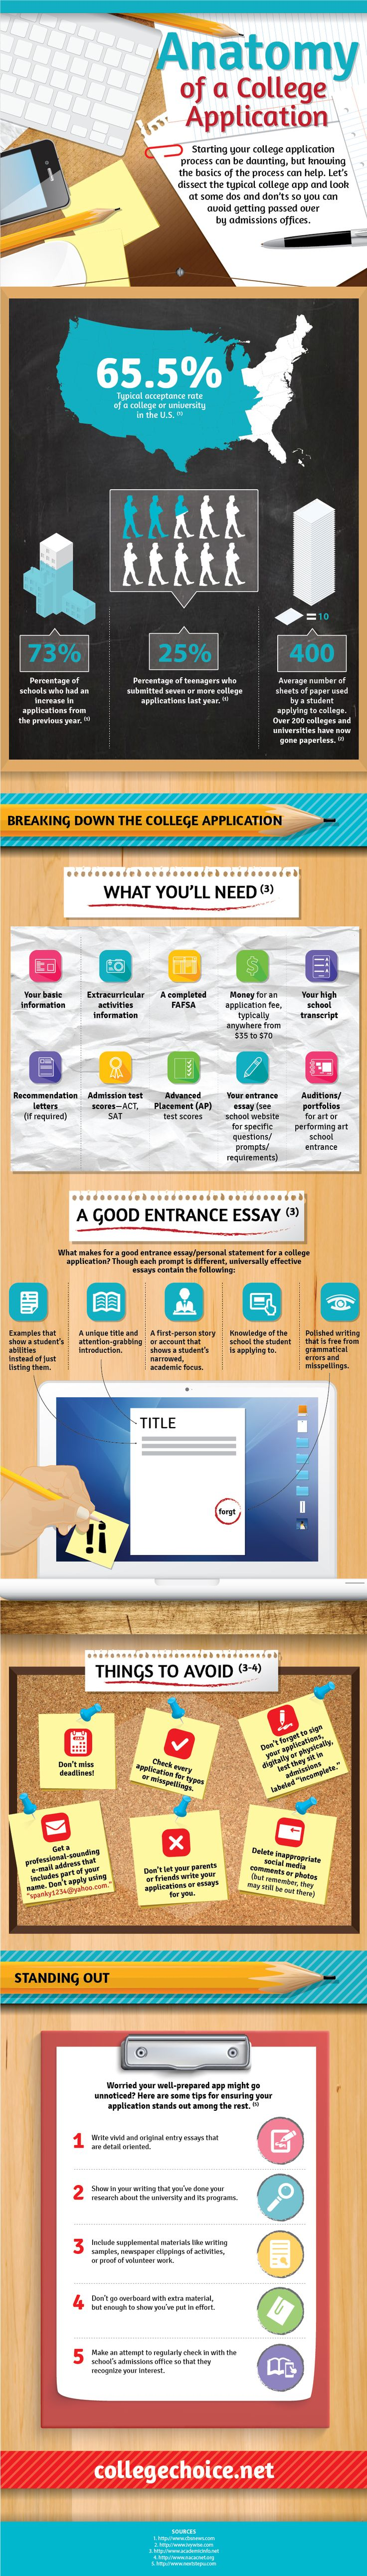 best ideas about college application essay here is a great infographic from our friends at college choice check out the infographic